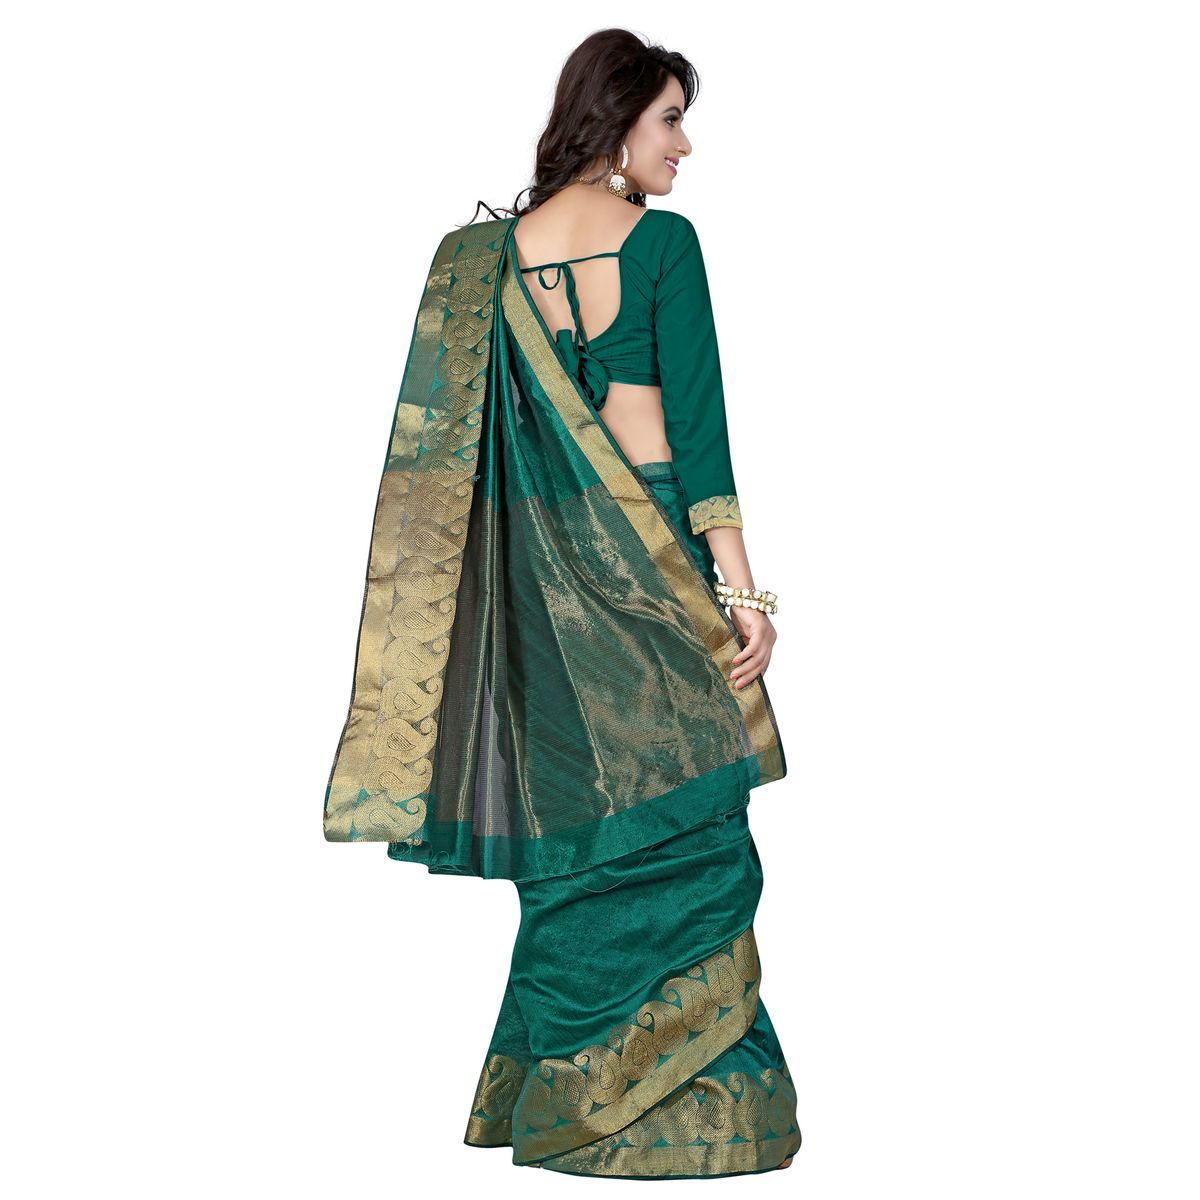 B4Best Creation Embellished Net Rama Color Saree for Women with Blouse Piece114